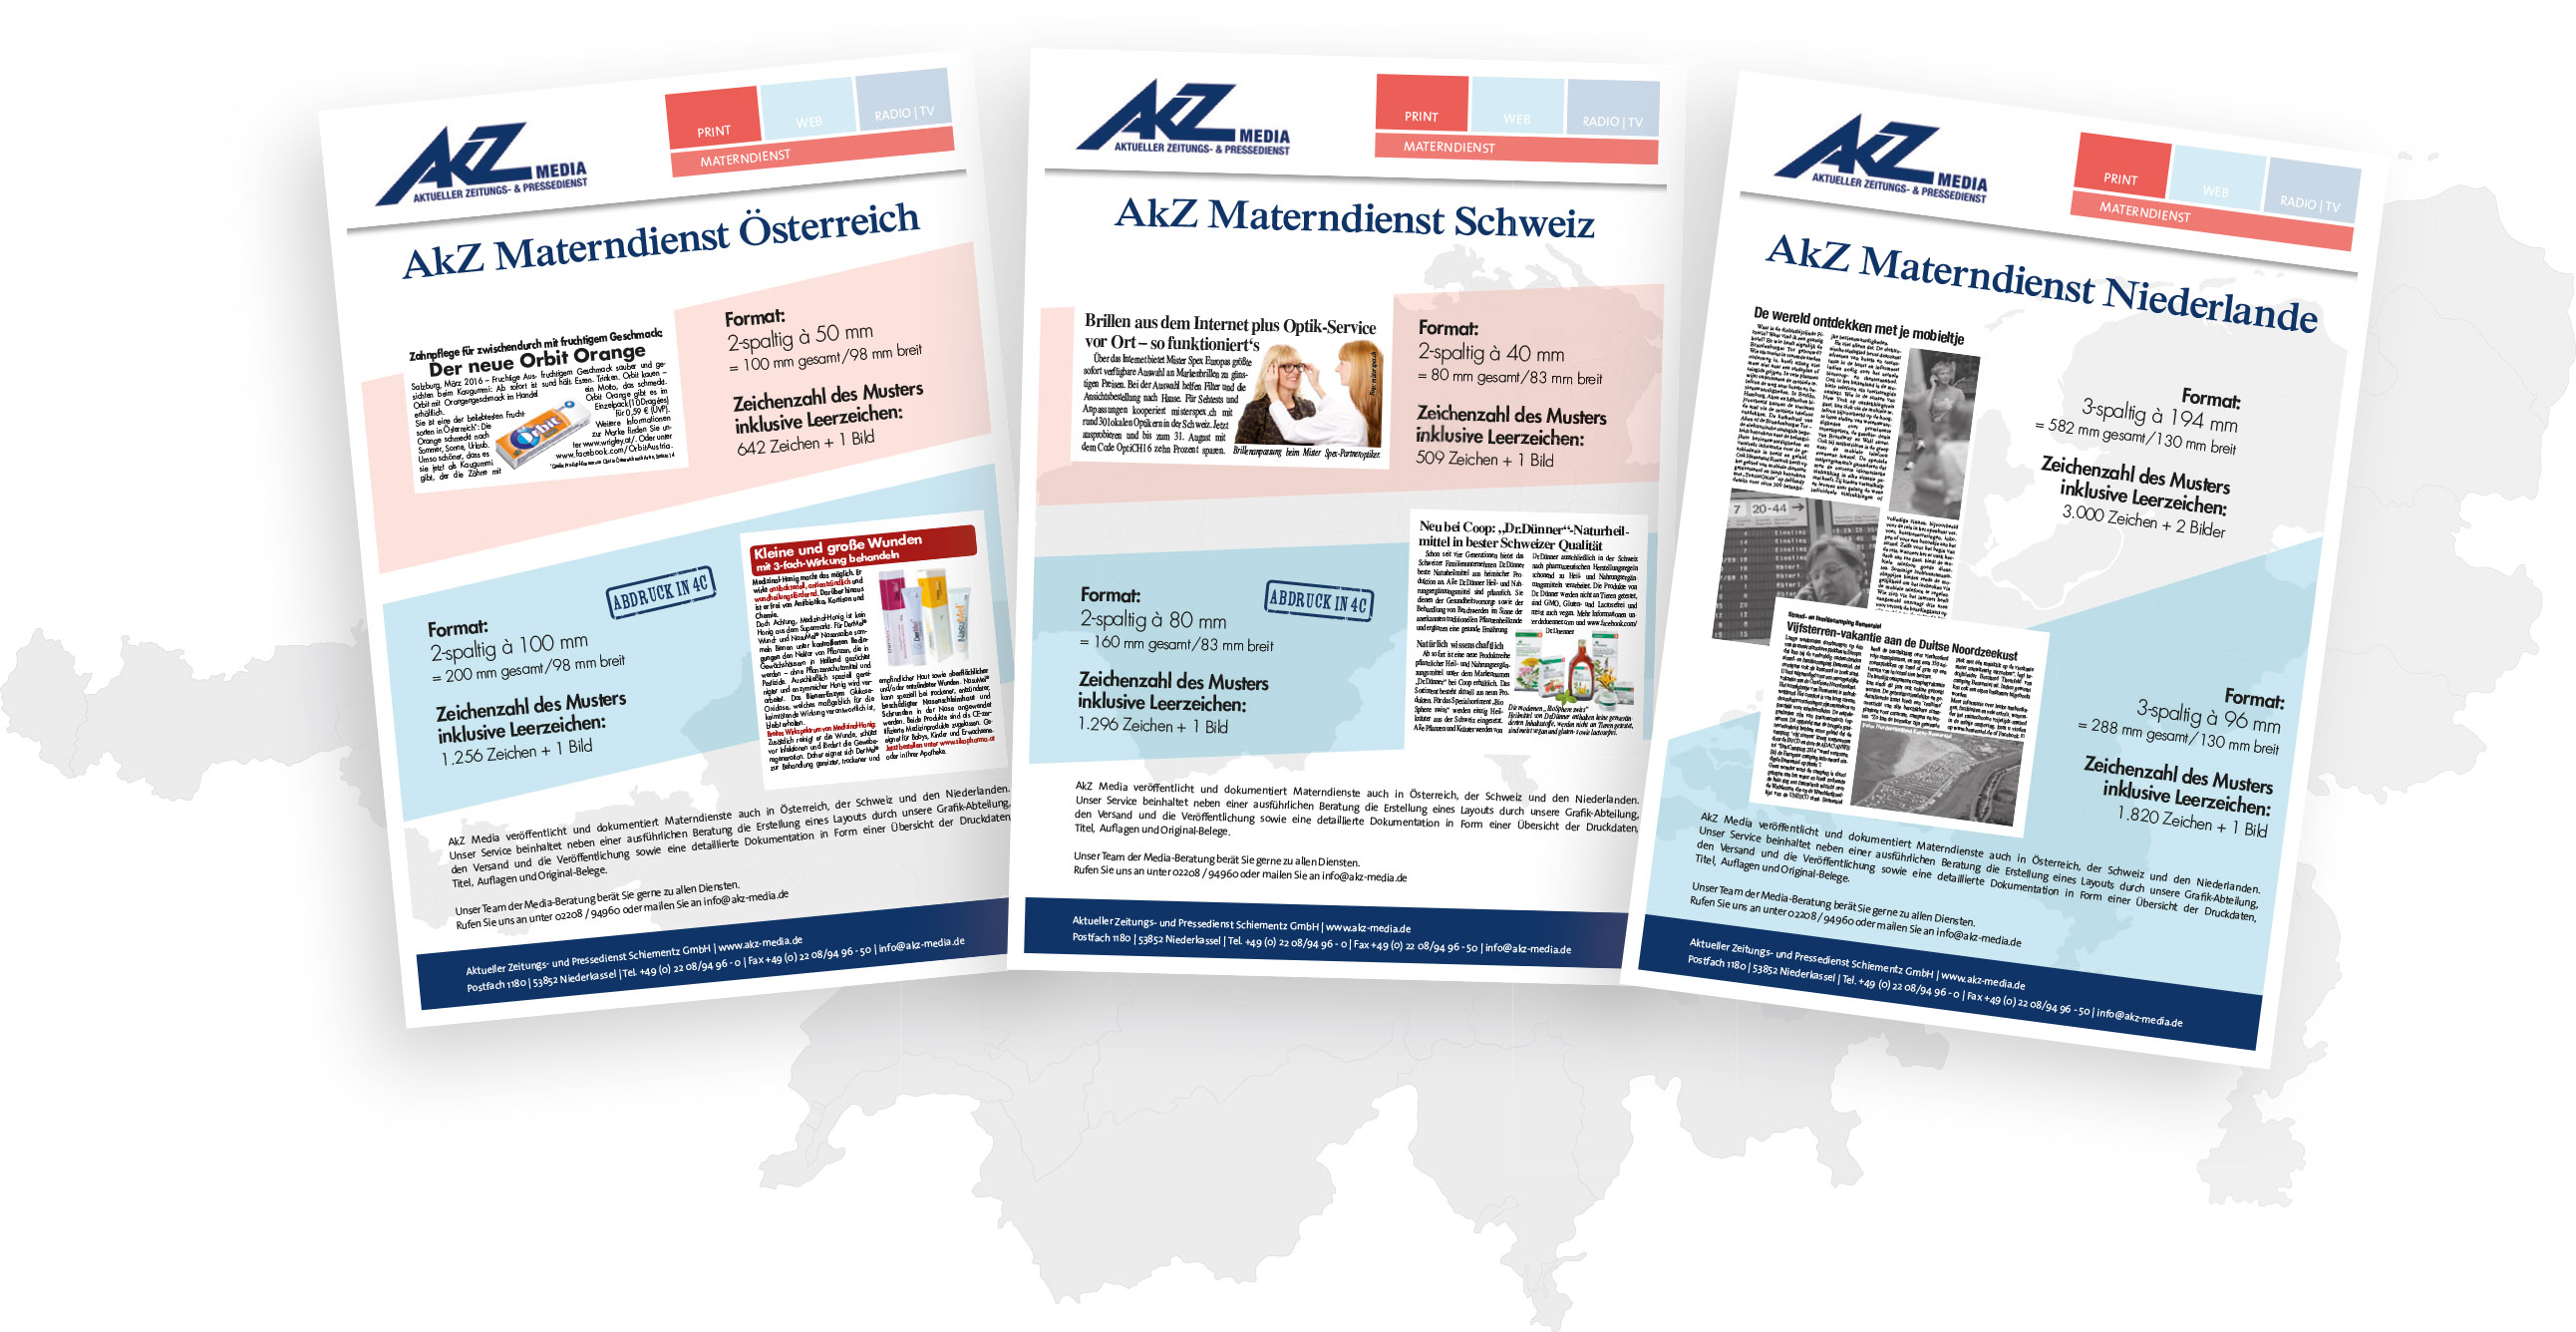 AkZ MD Flyer_Collage